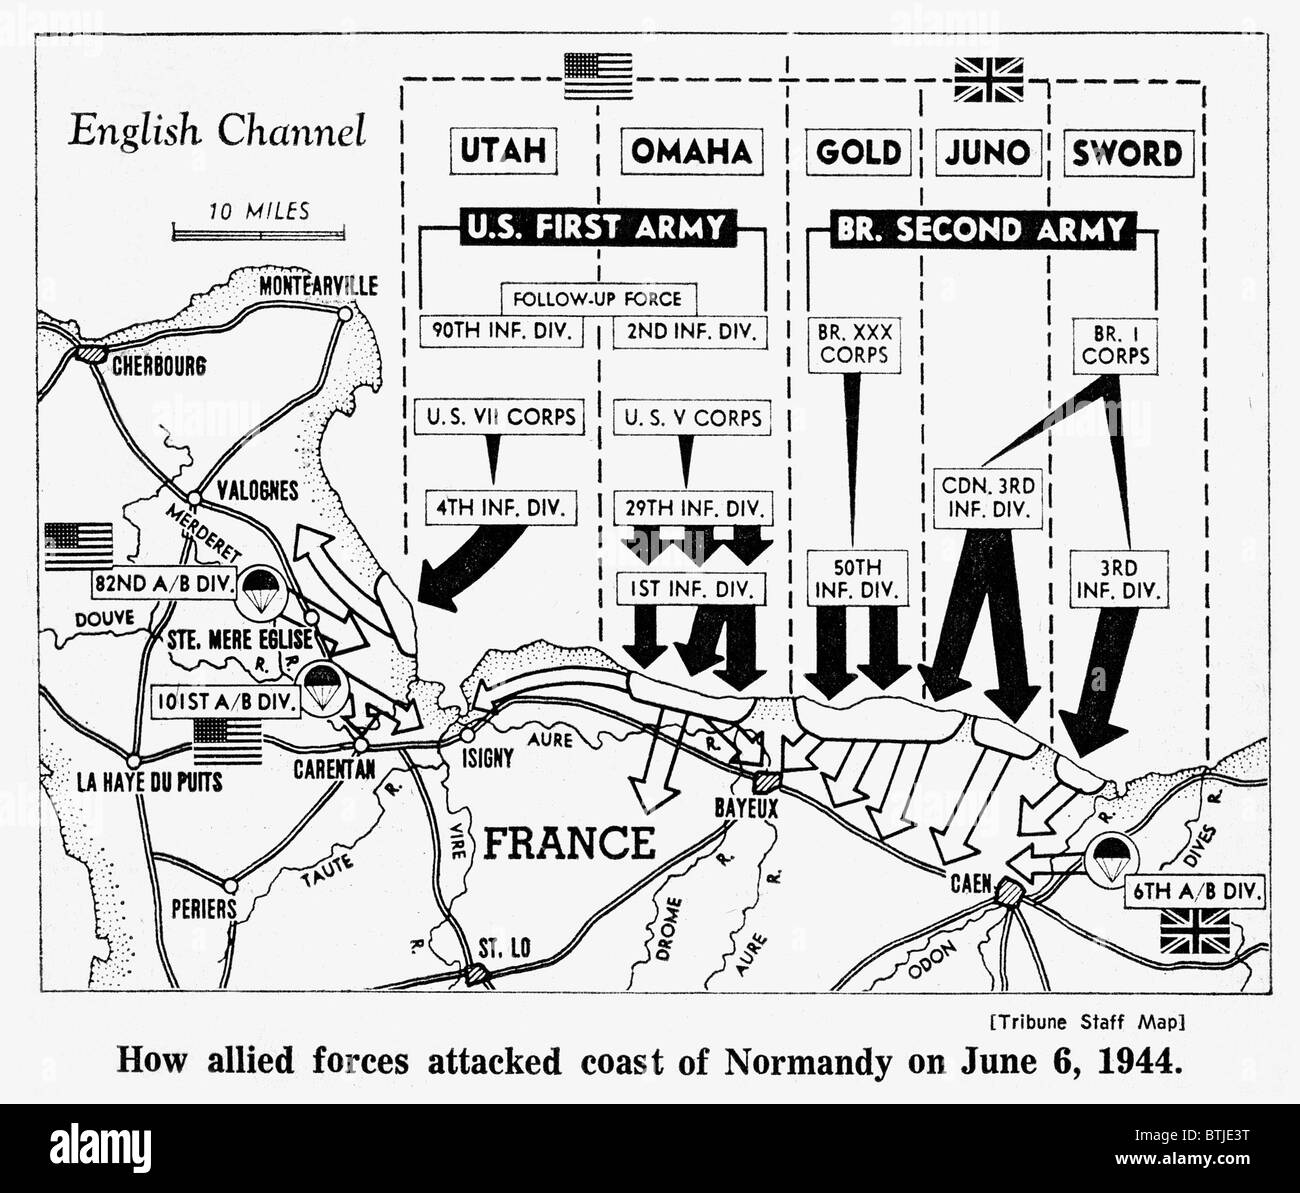 D Day Invasion Map High Resolution Stock Photography and Images - Alamy